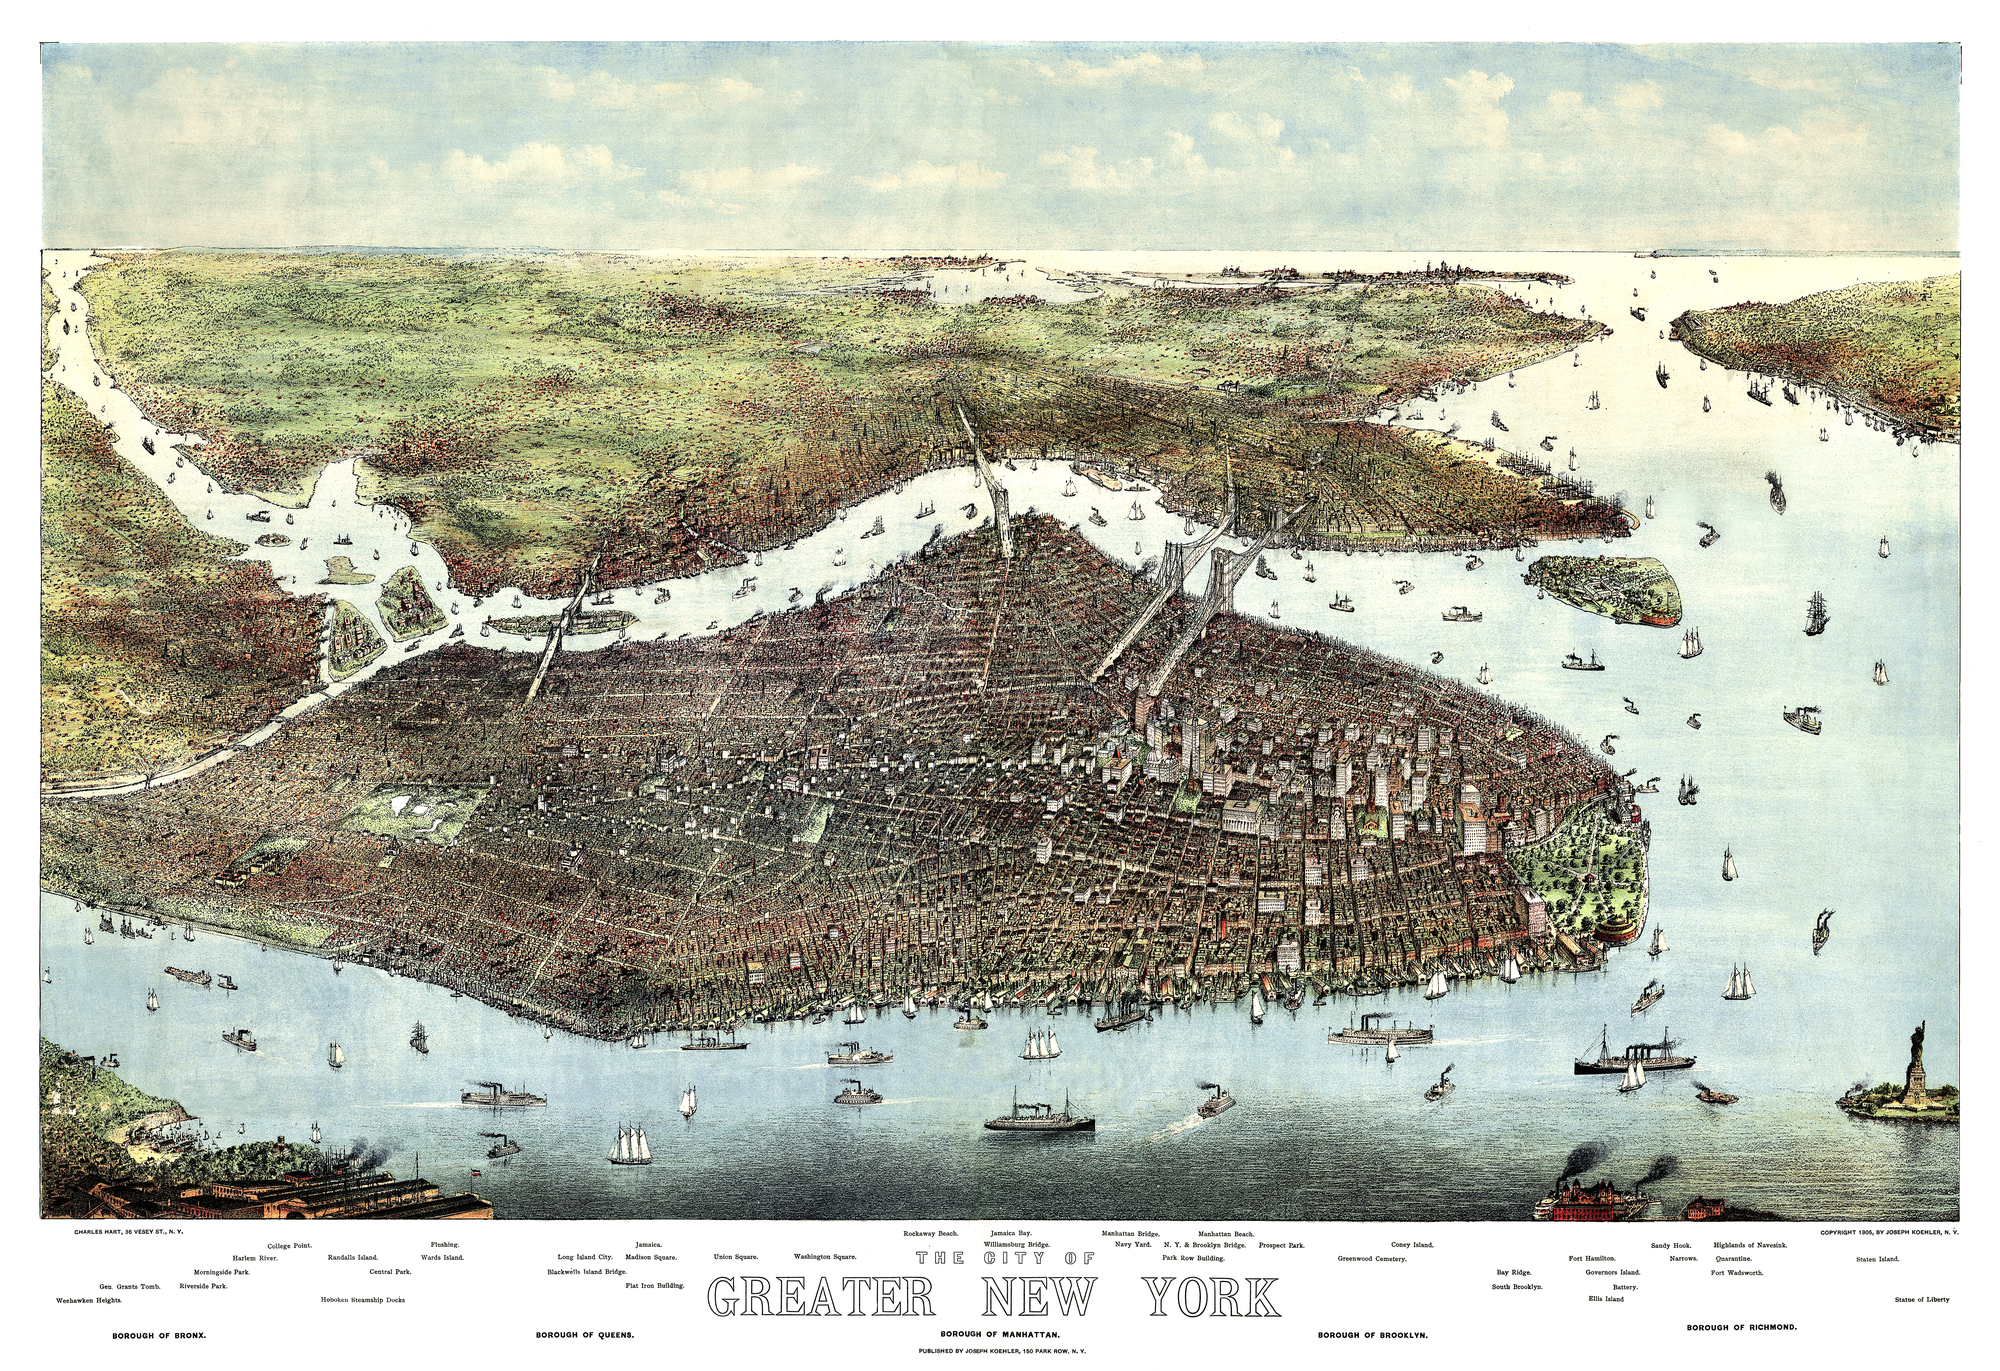 Old aerial view of New York. By Charles Hart. Publ. Joseph Koeher, New York, 1905